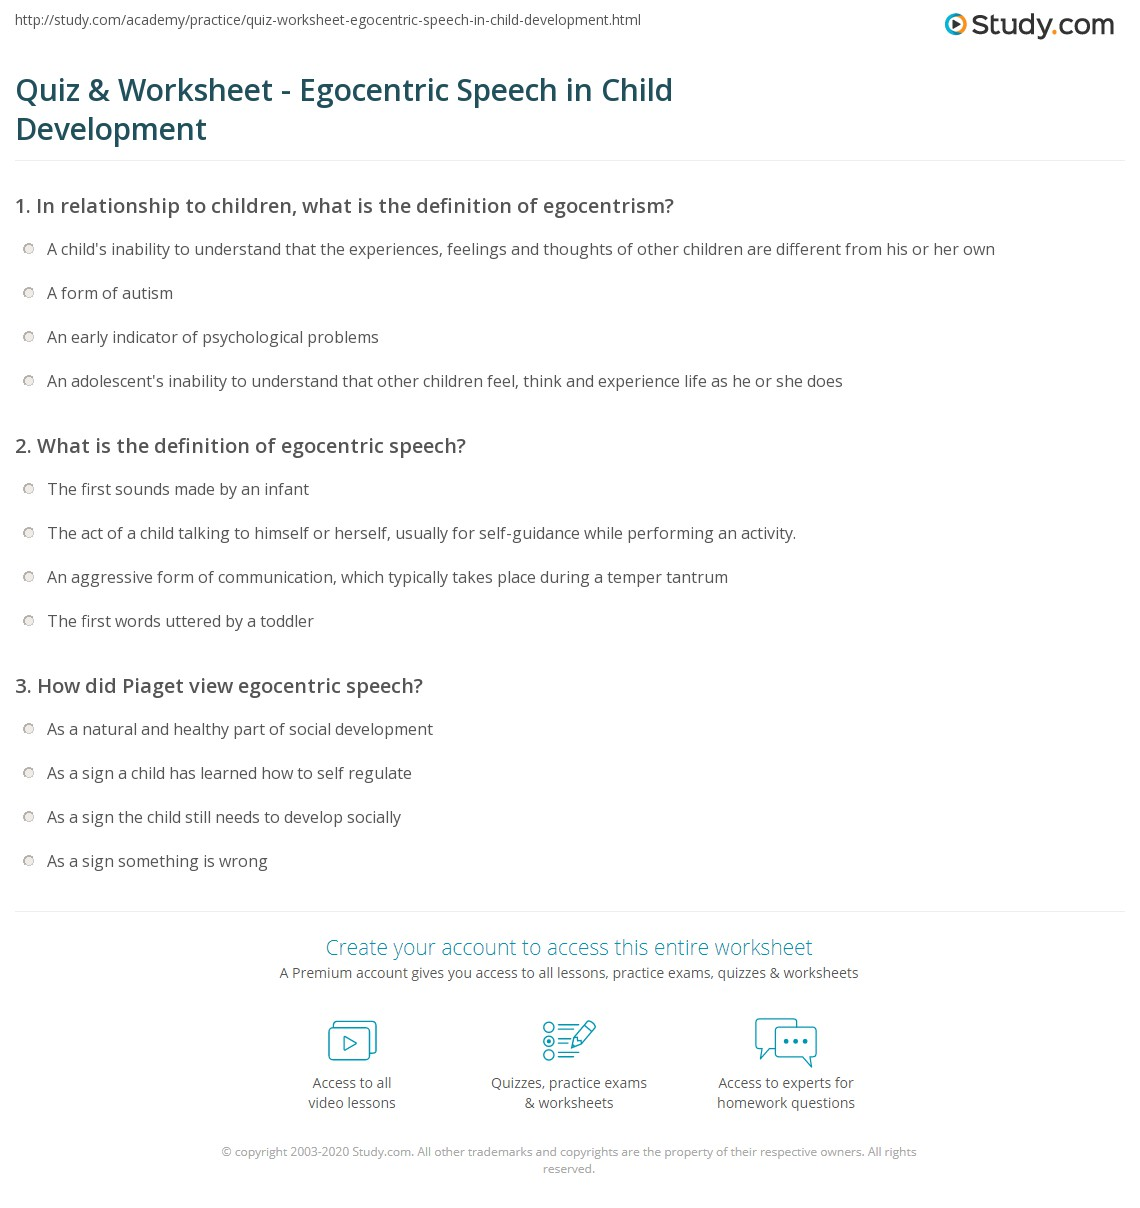 Quiz Worksheet Egocentric Speech In Child Development Study